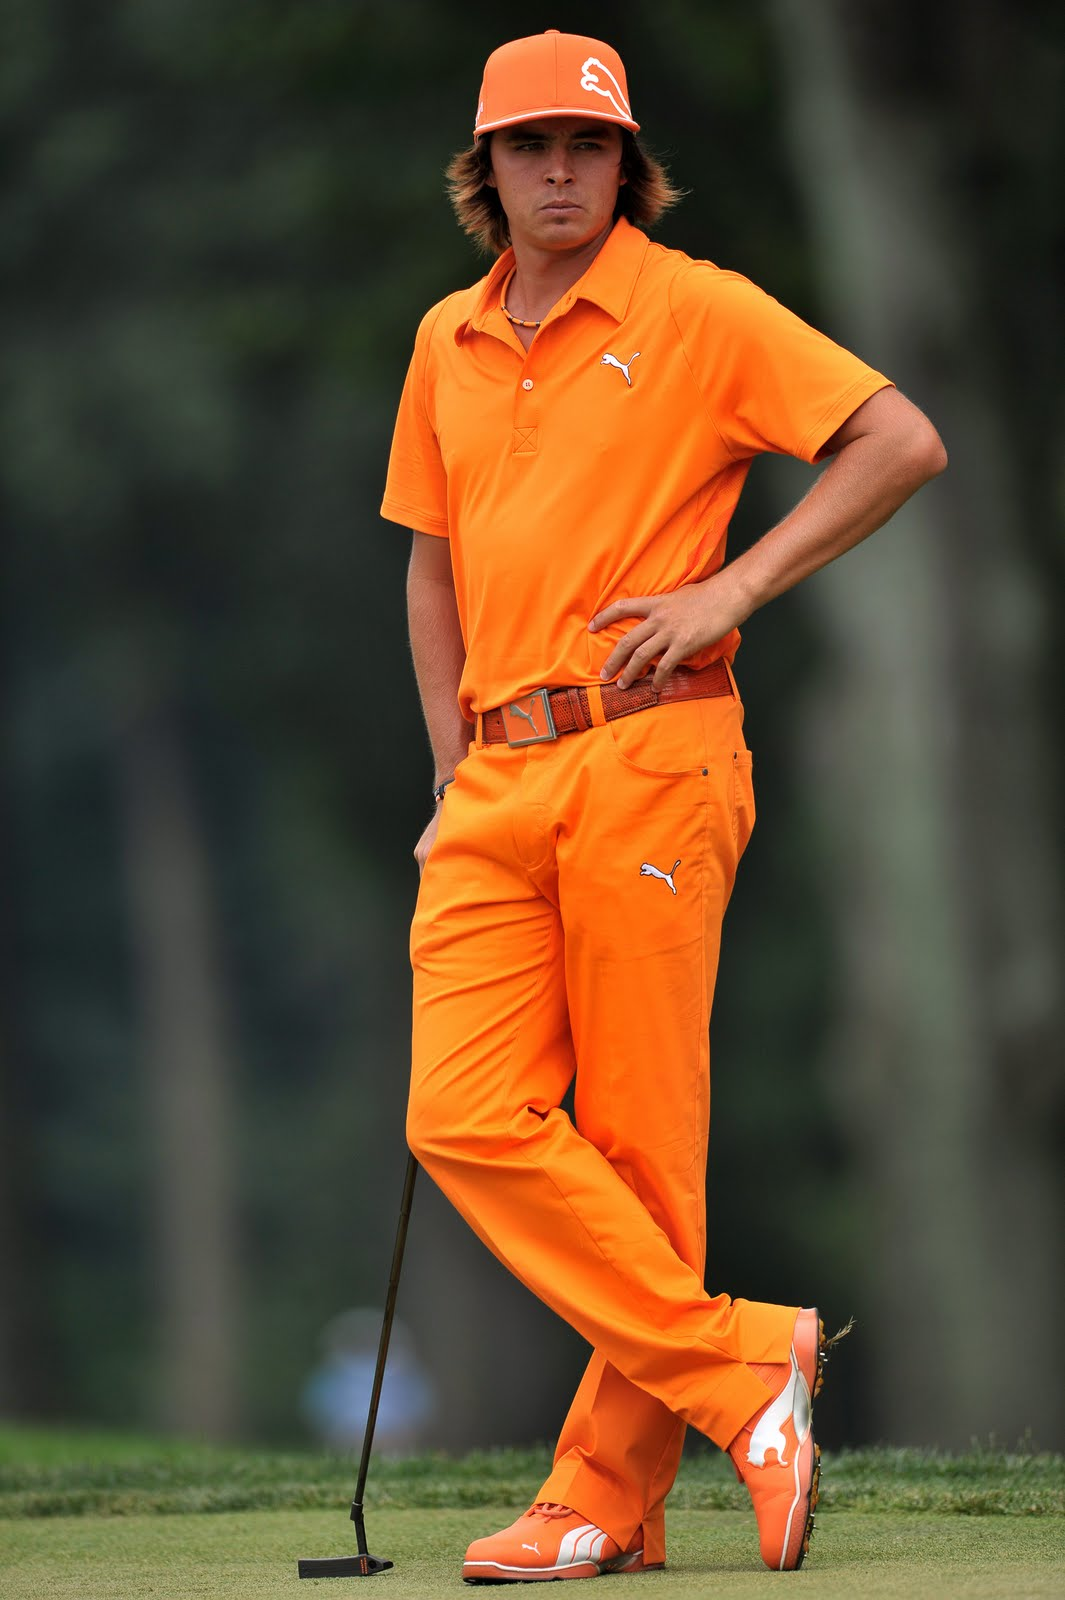 Image result for rickie fowler outfits